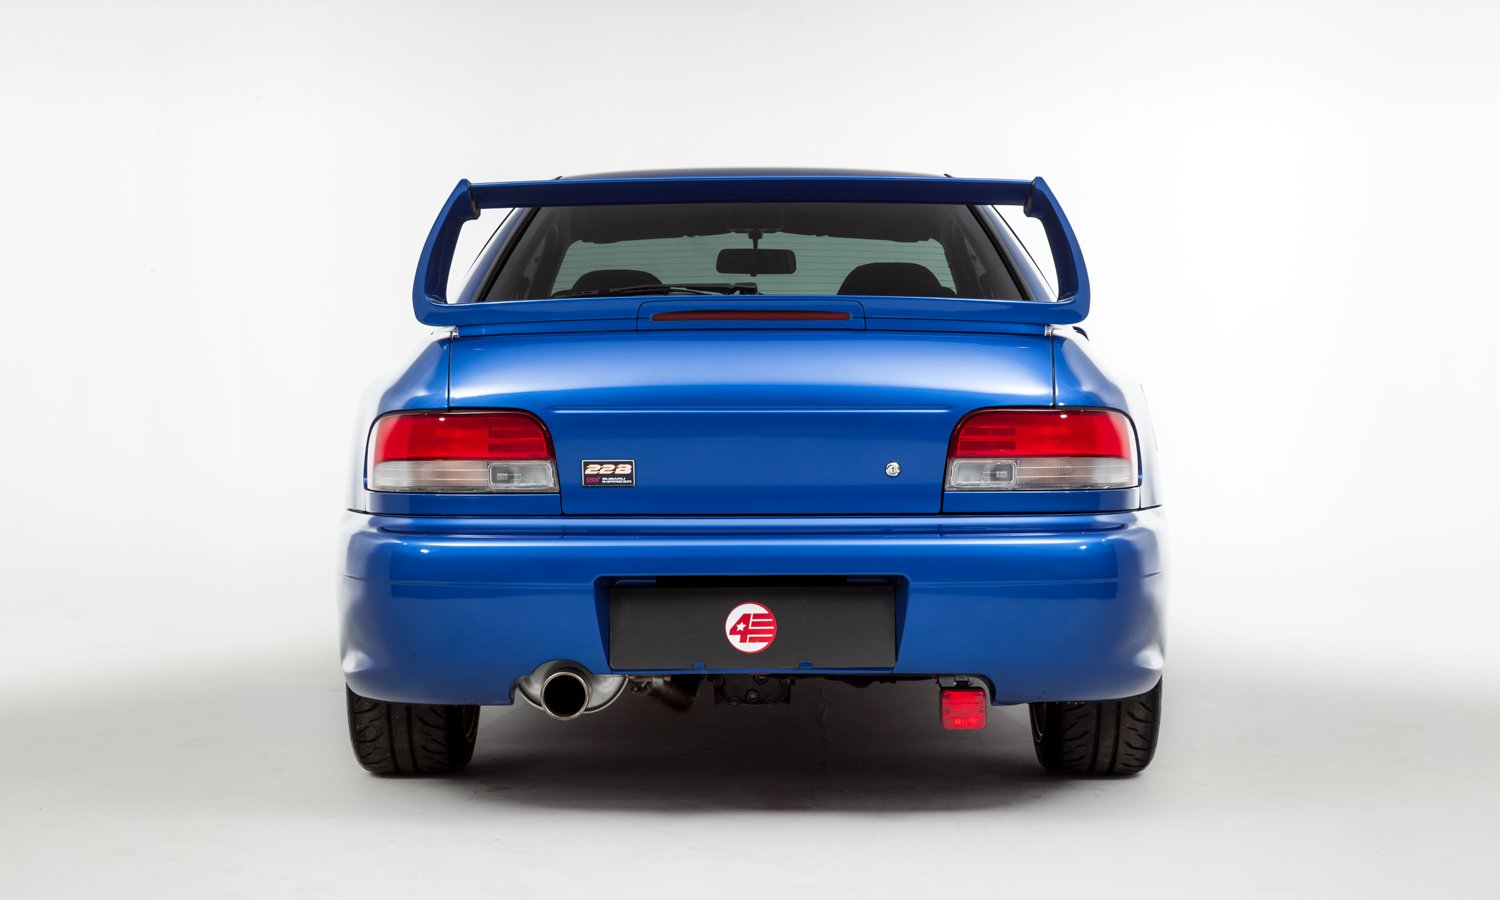 Subaru-Impreza-22B-STi-1998-for-sale-10